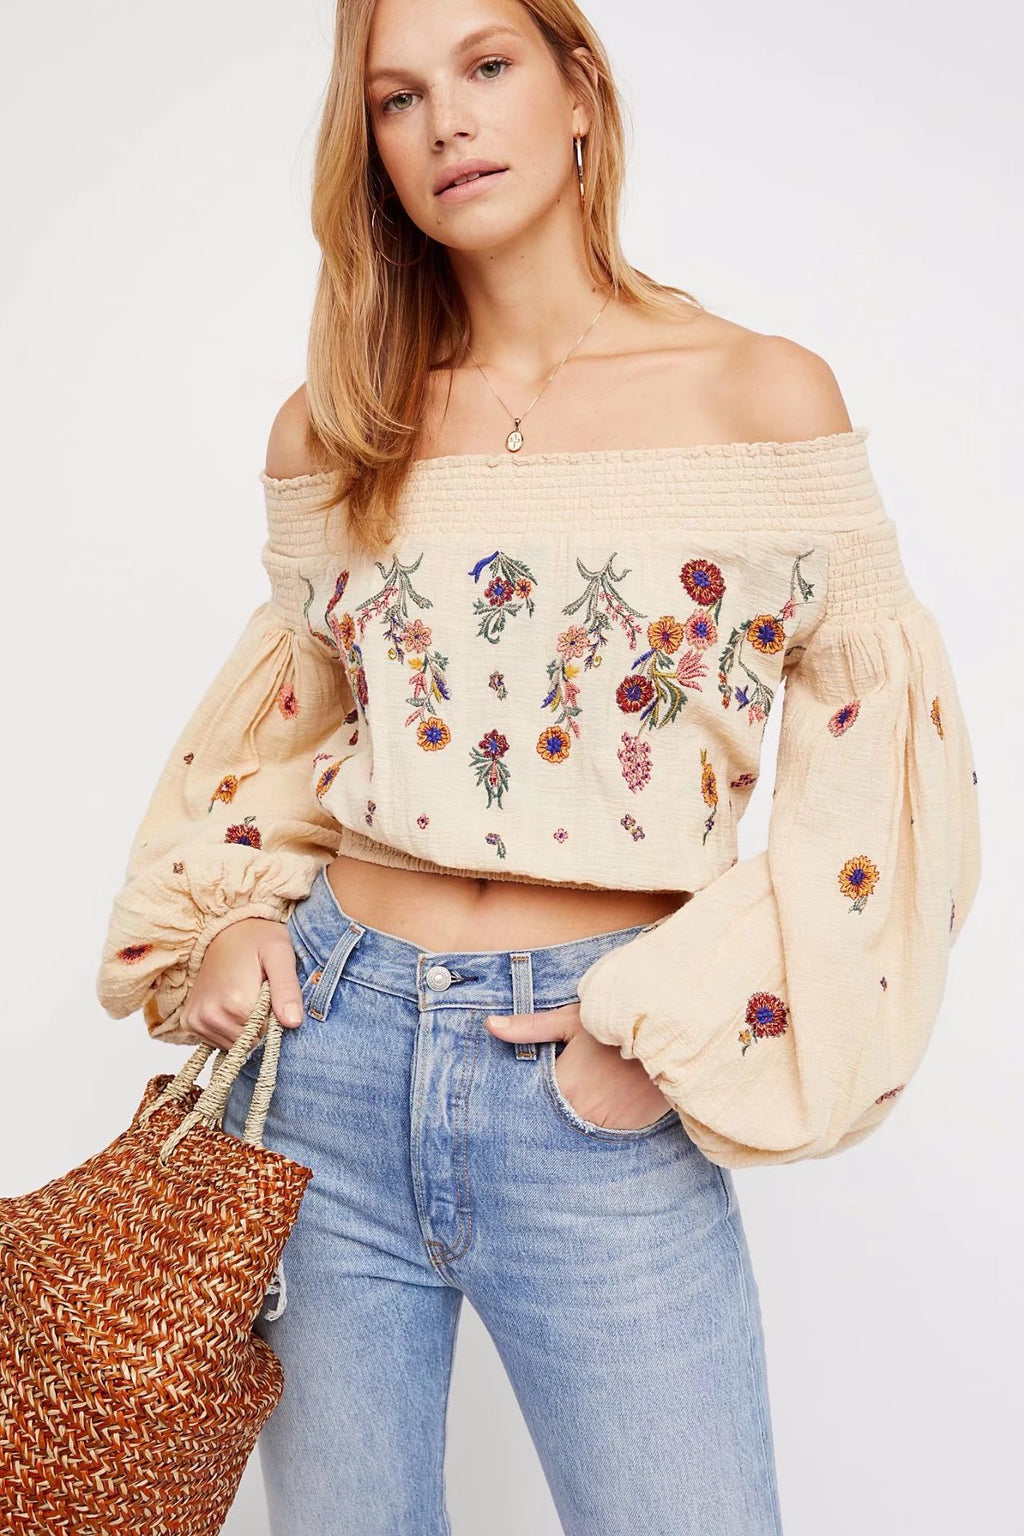 Camellia Floral Top - Style Me Love